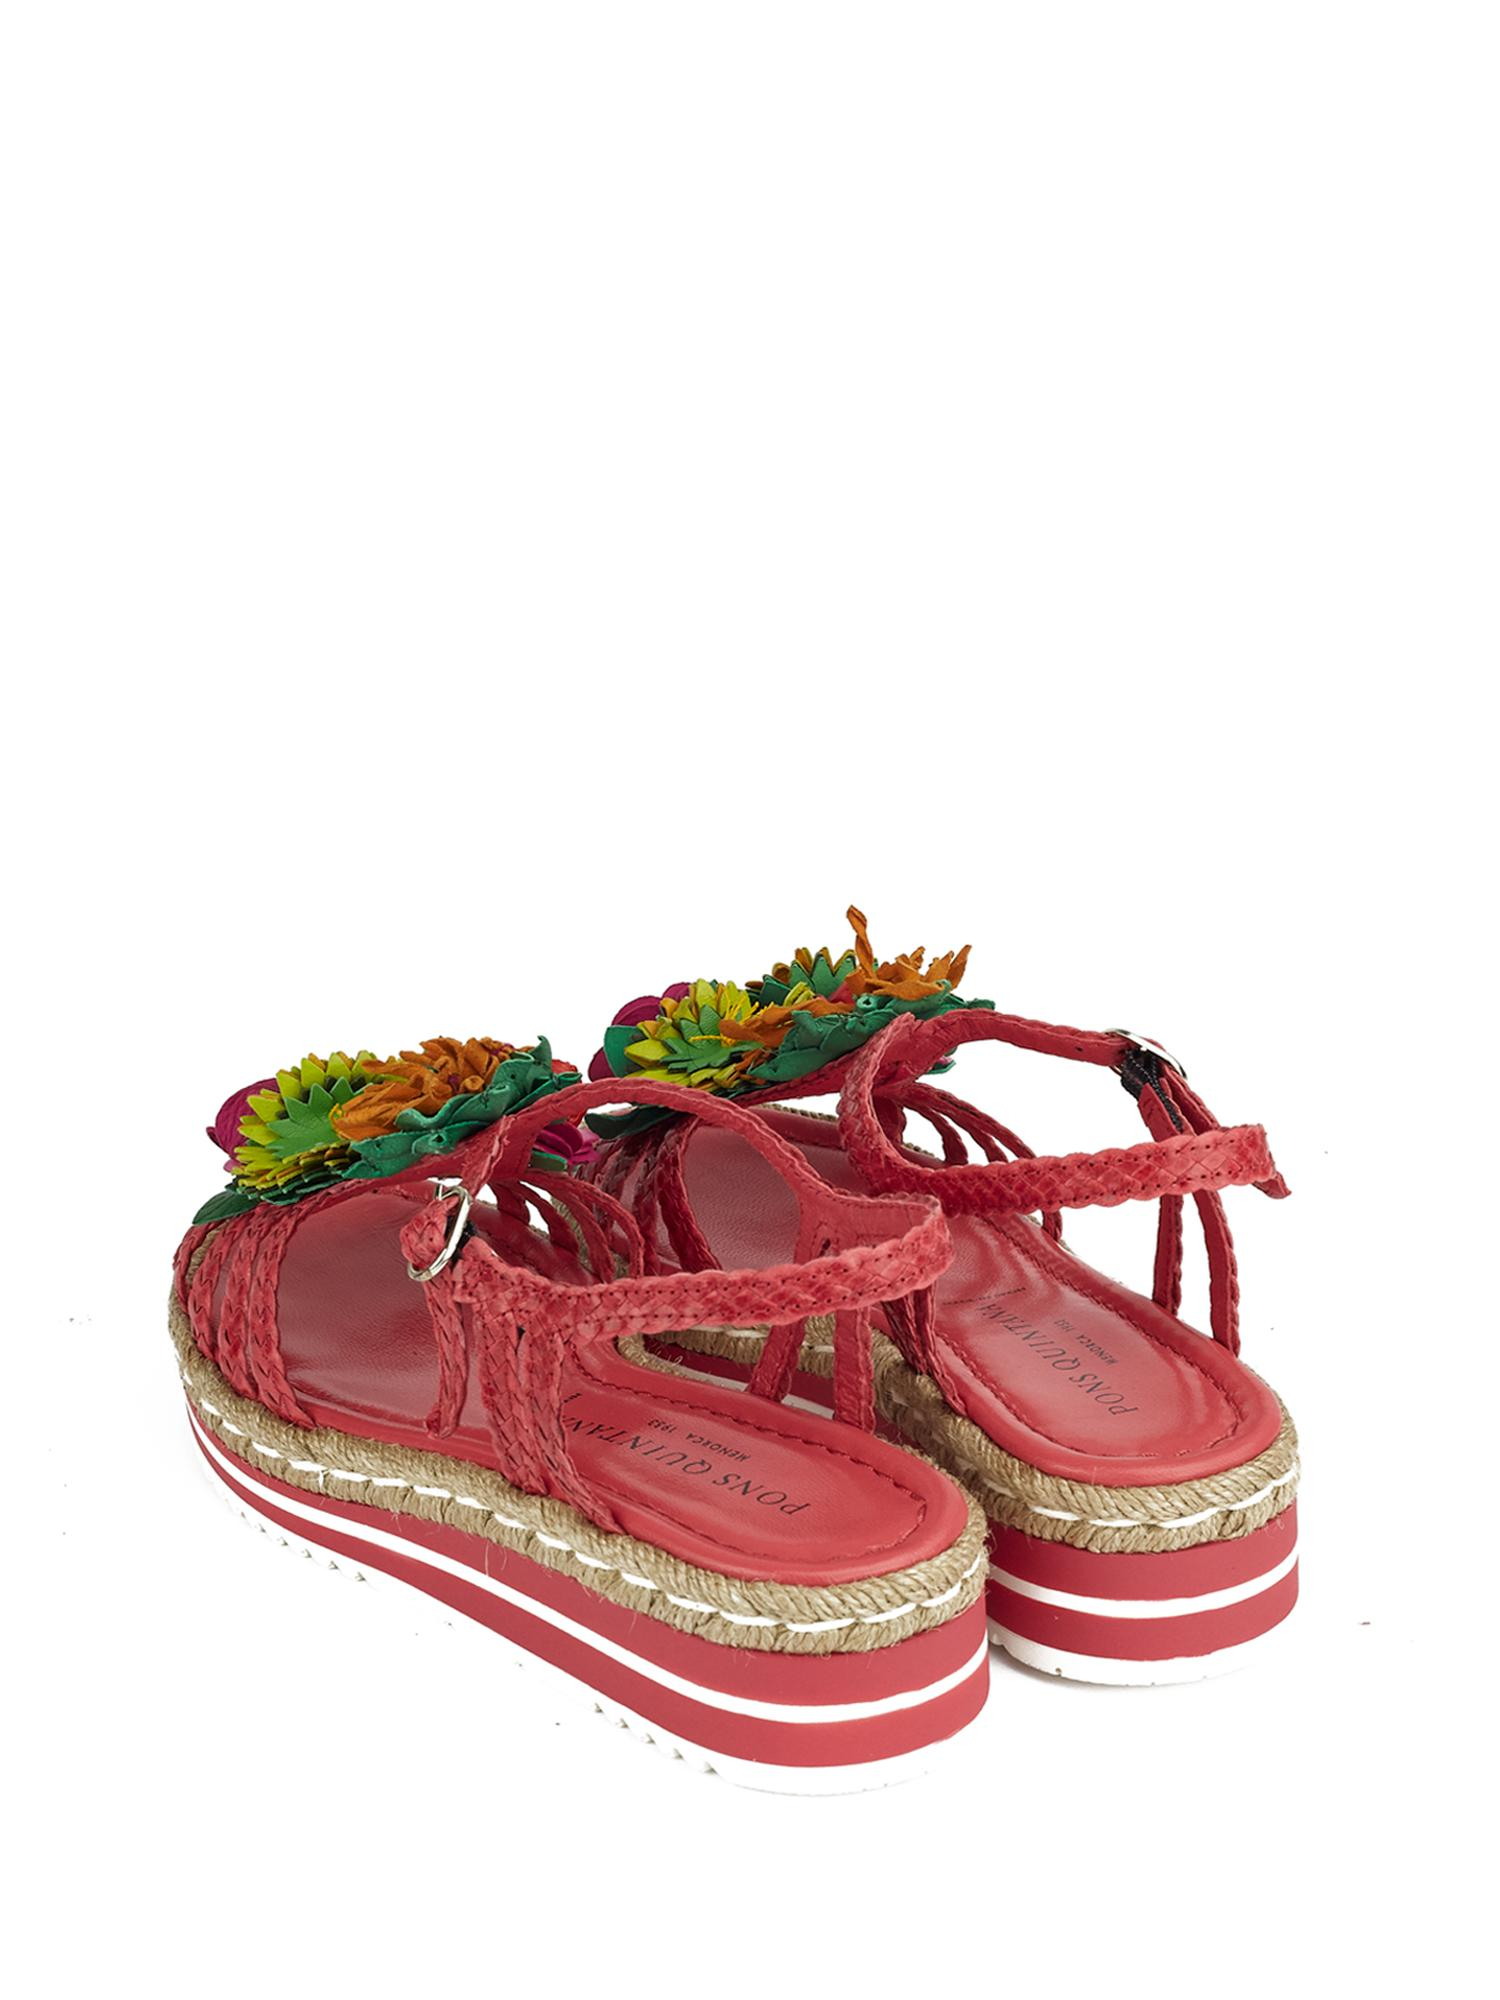 MILAN STRAWBERRY PLATFORM SANDAL